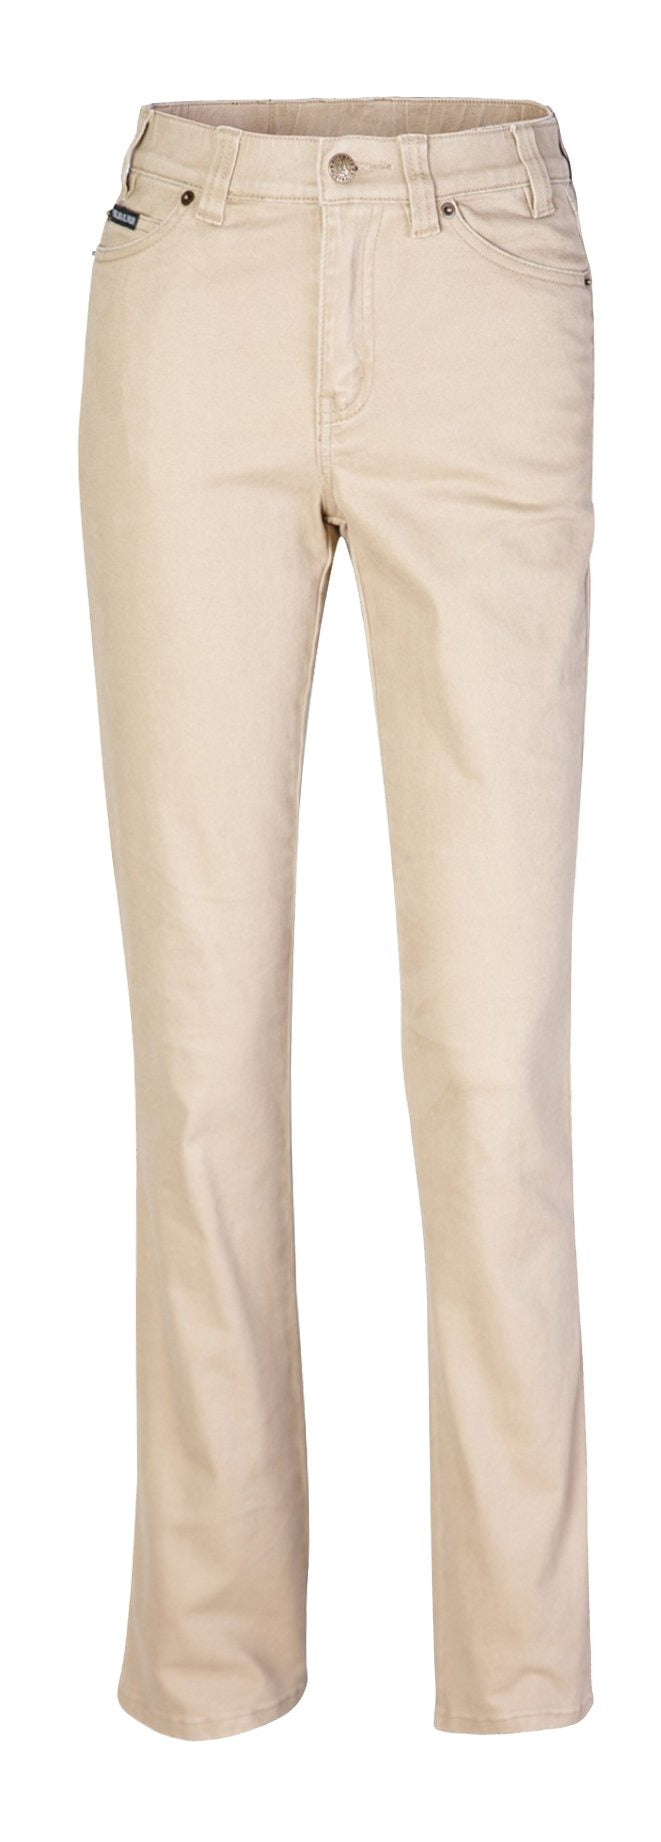 Ritemate Ladies Cotton Stretch Jean